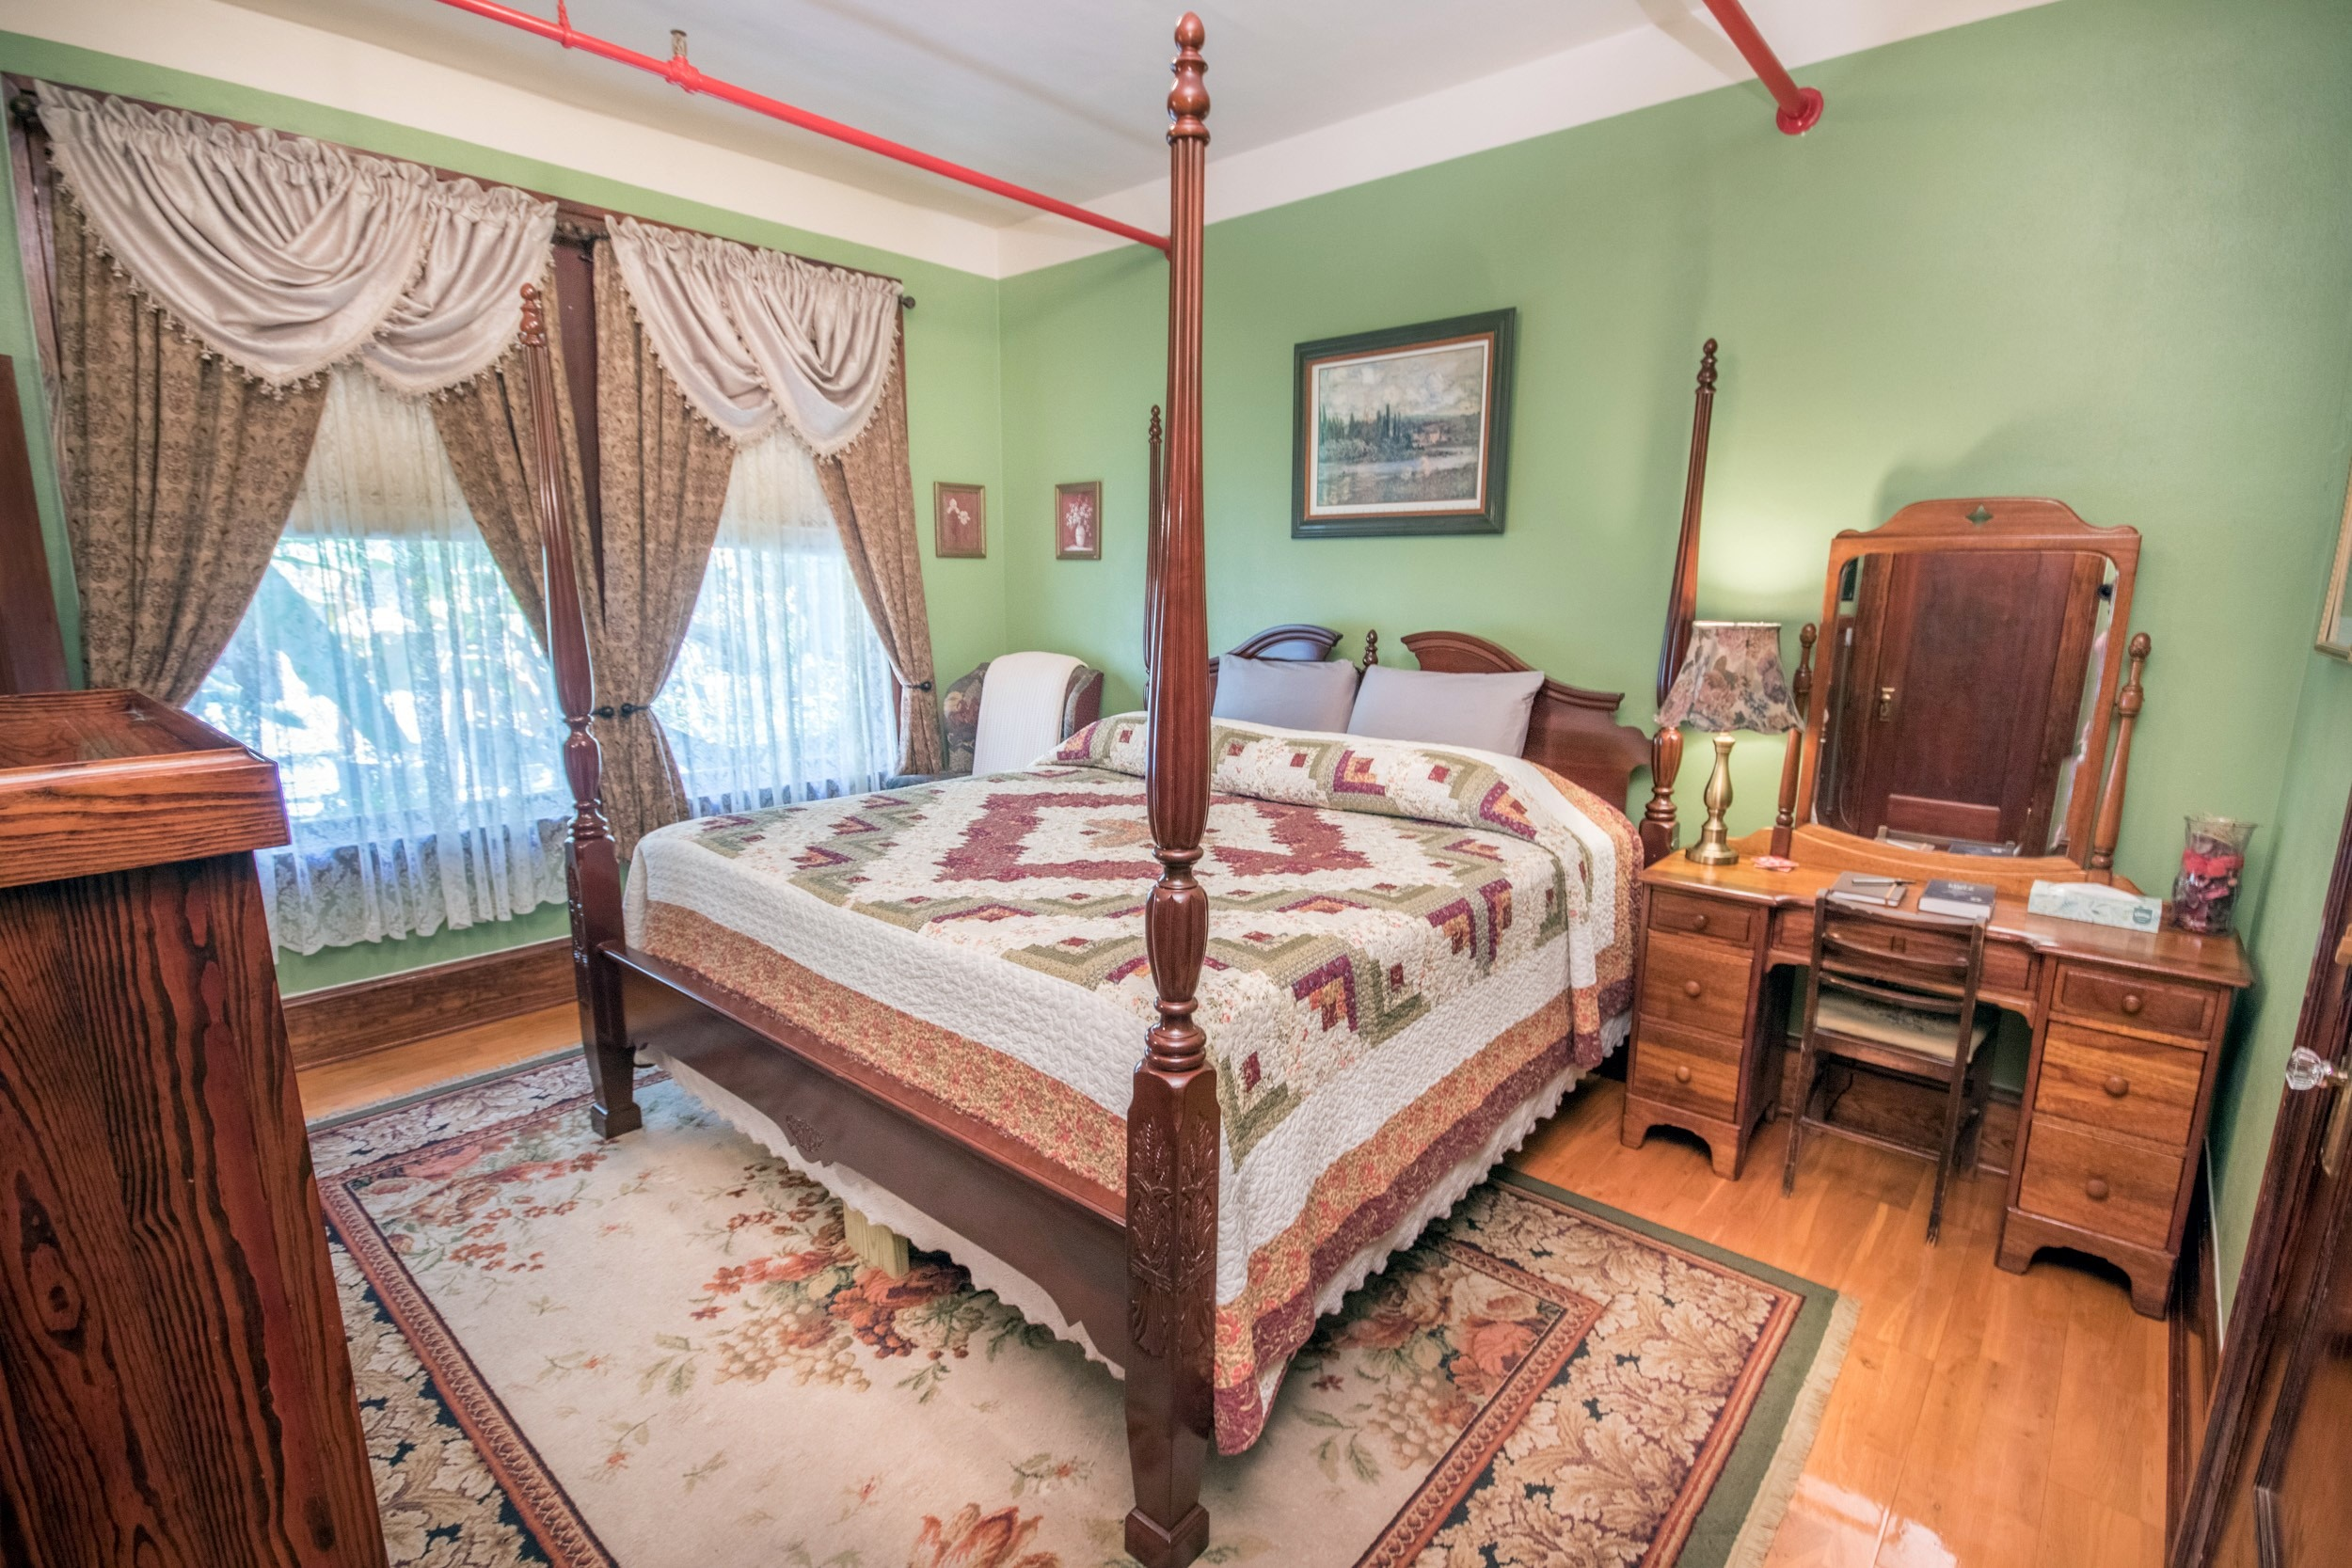 Room with green walls and bed